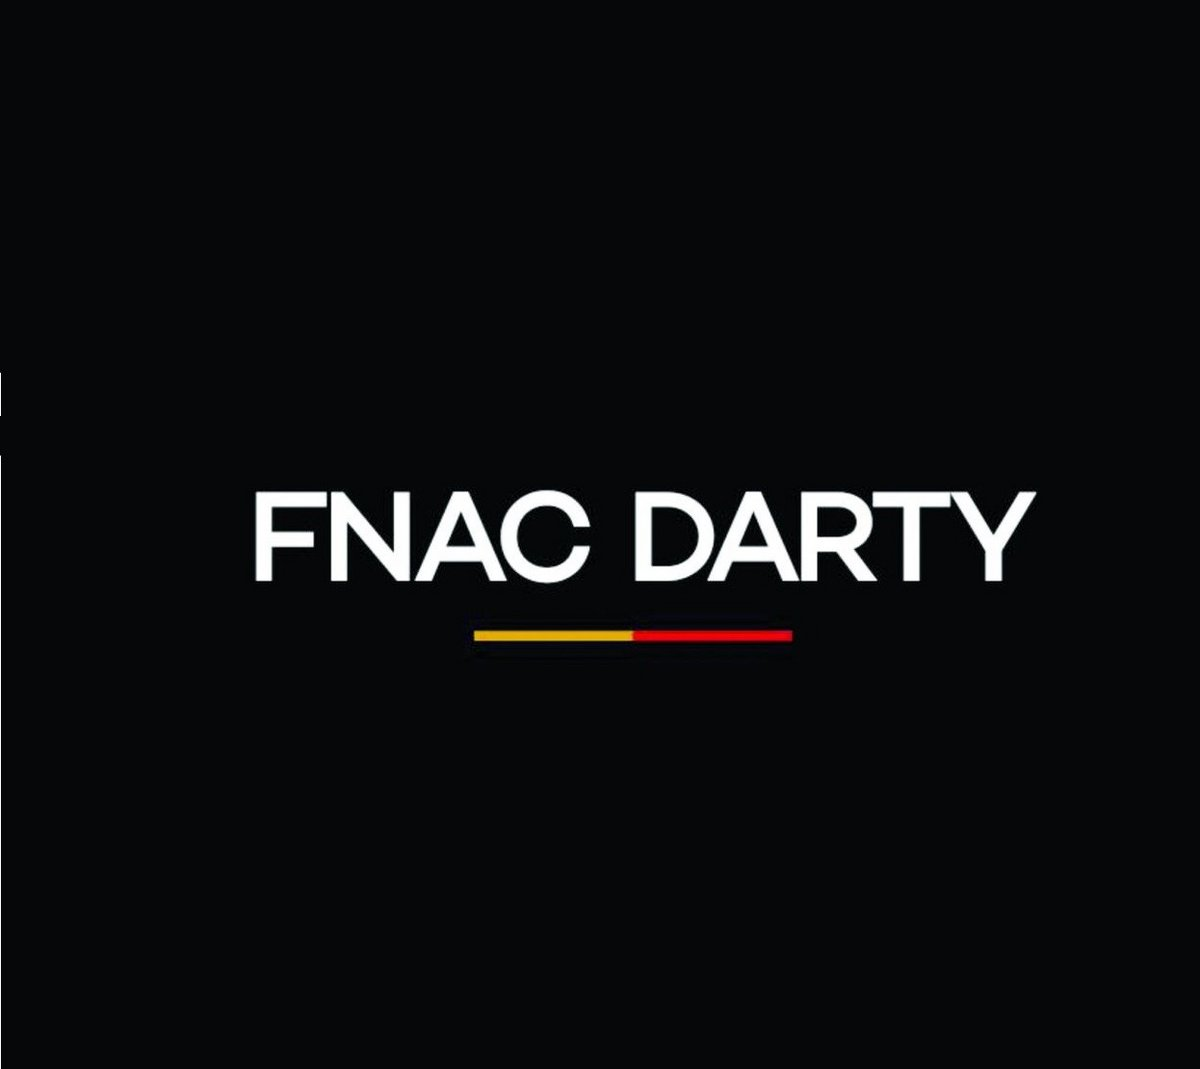 fnac darty logo 1.jpg